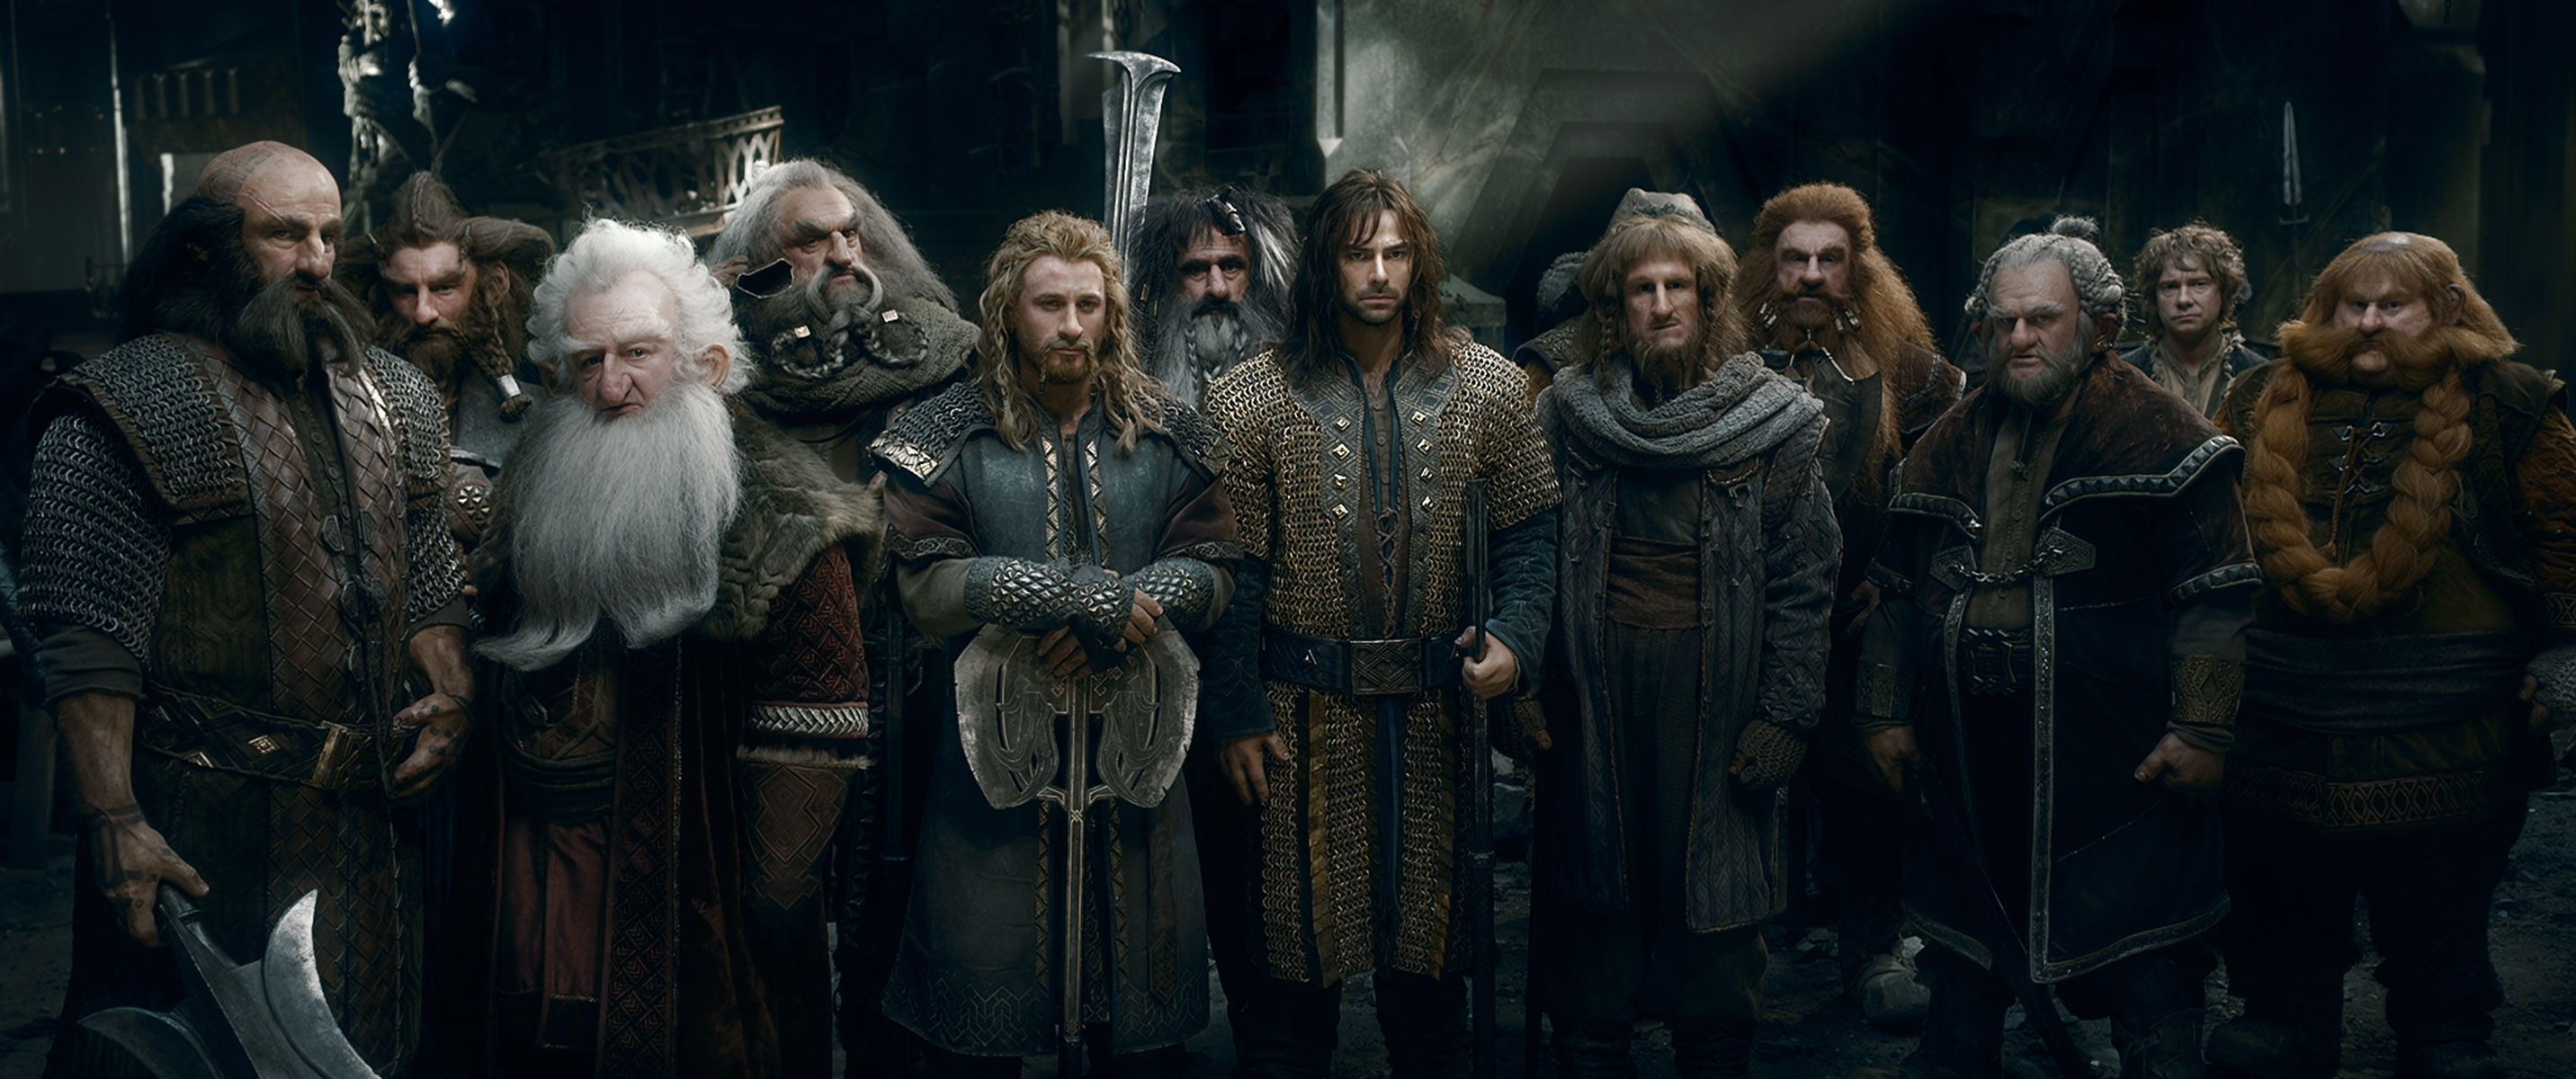 The Hobbit: The Battle of the Five Armies | We Geek Girls